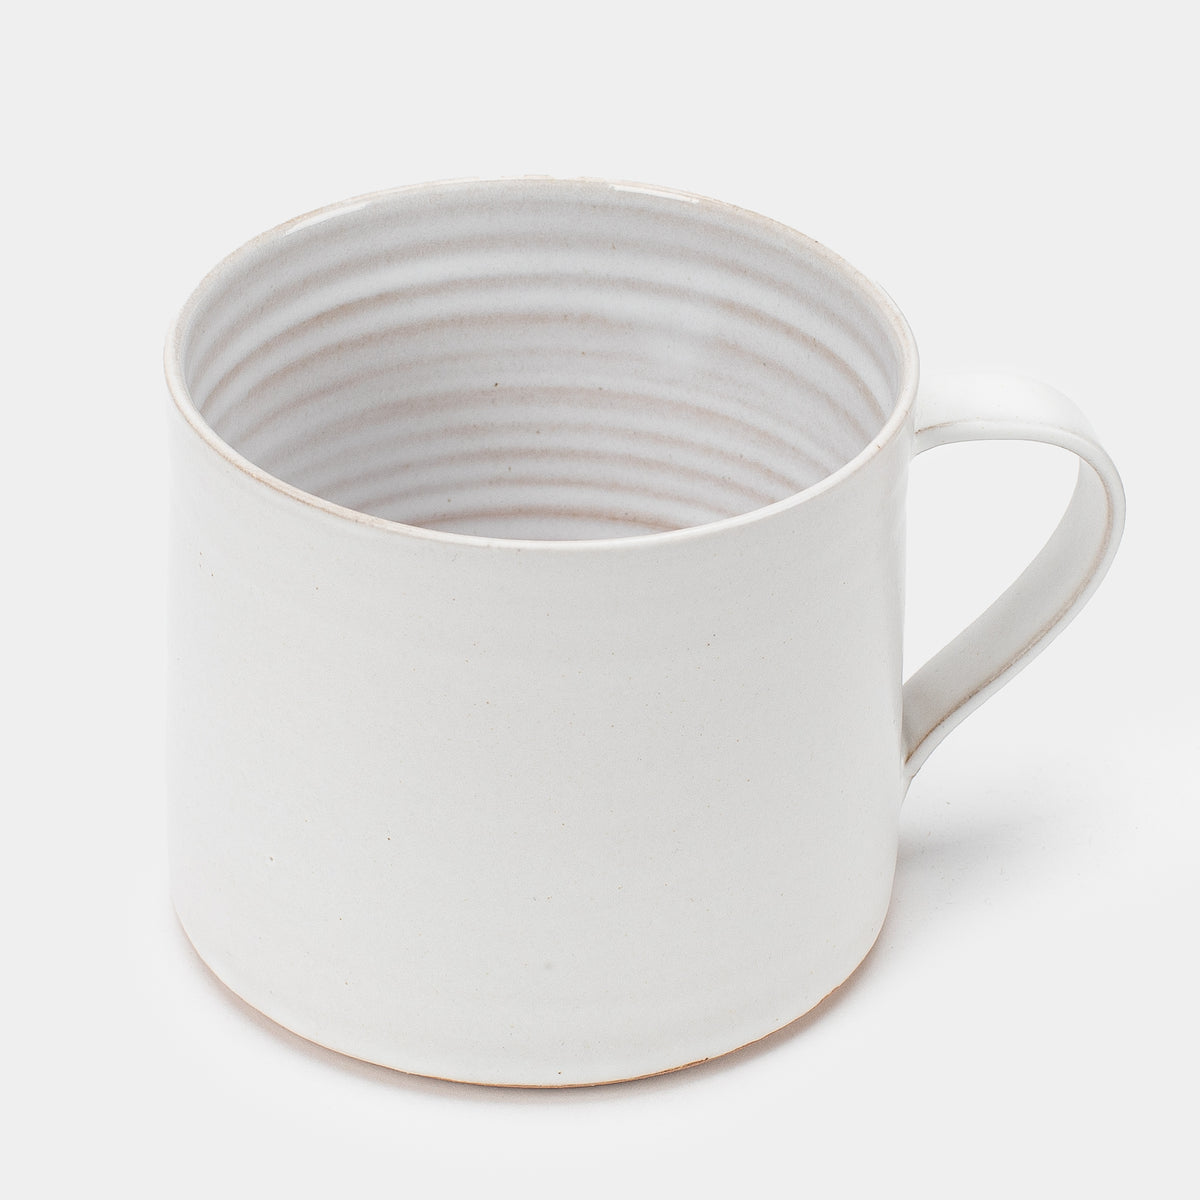 Load image into Gallery viewer, White Mug By Tracie Hervy